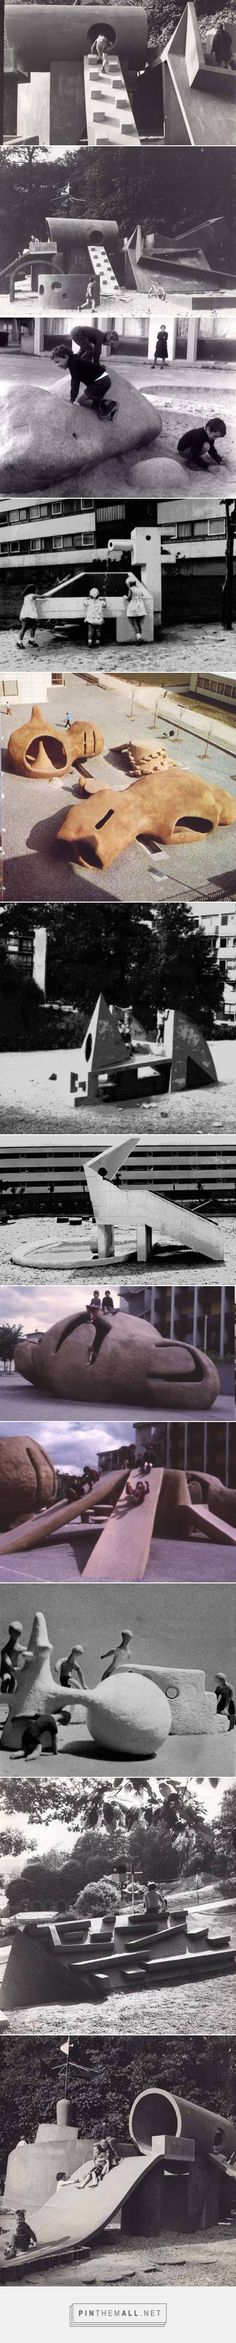 PIERRE SZÉKELY playgrounds — an ambitious project collapsing... - a grouped images picture - Pin Them All